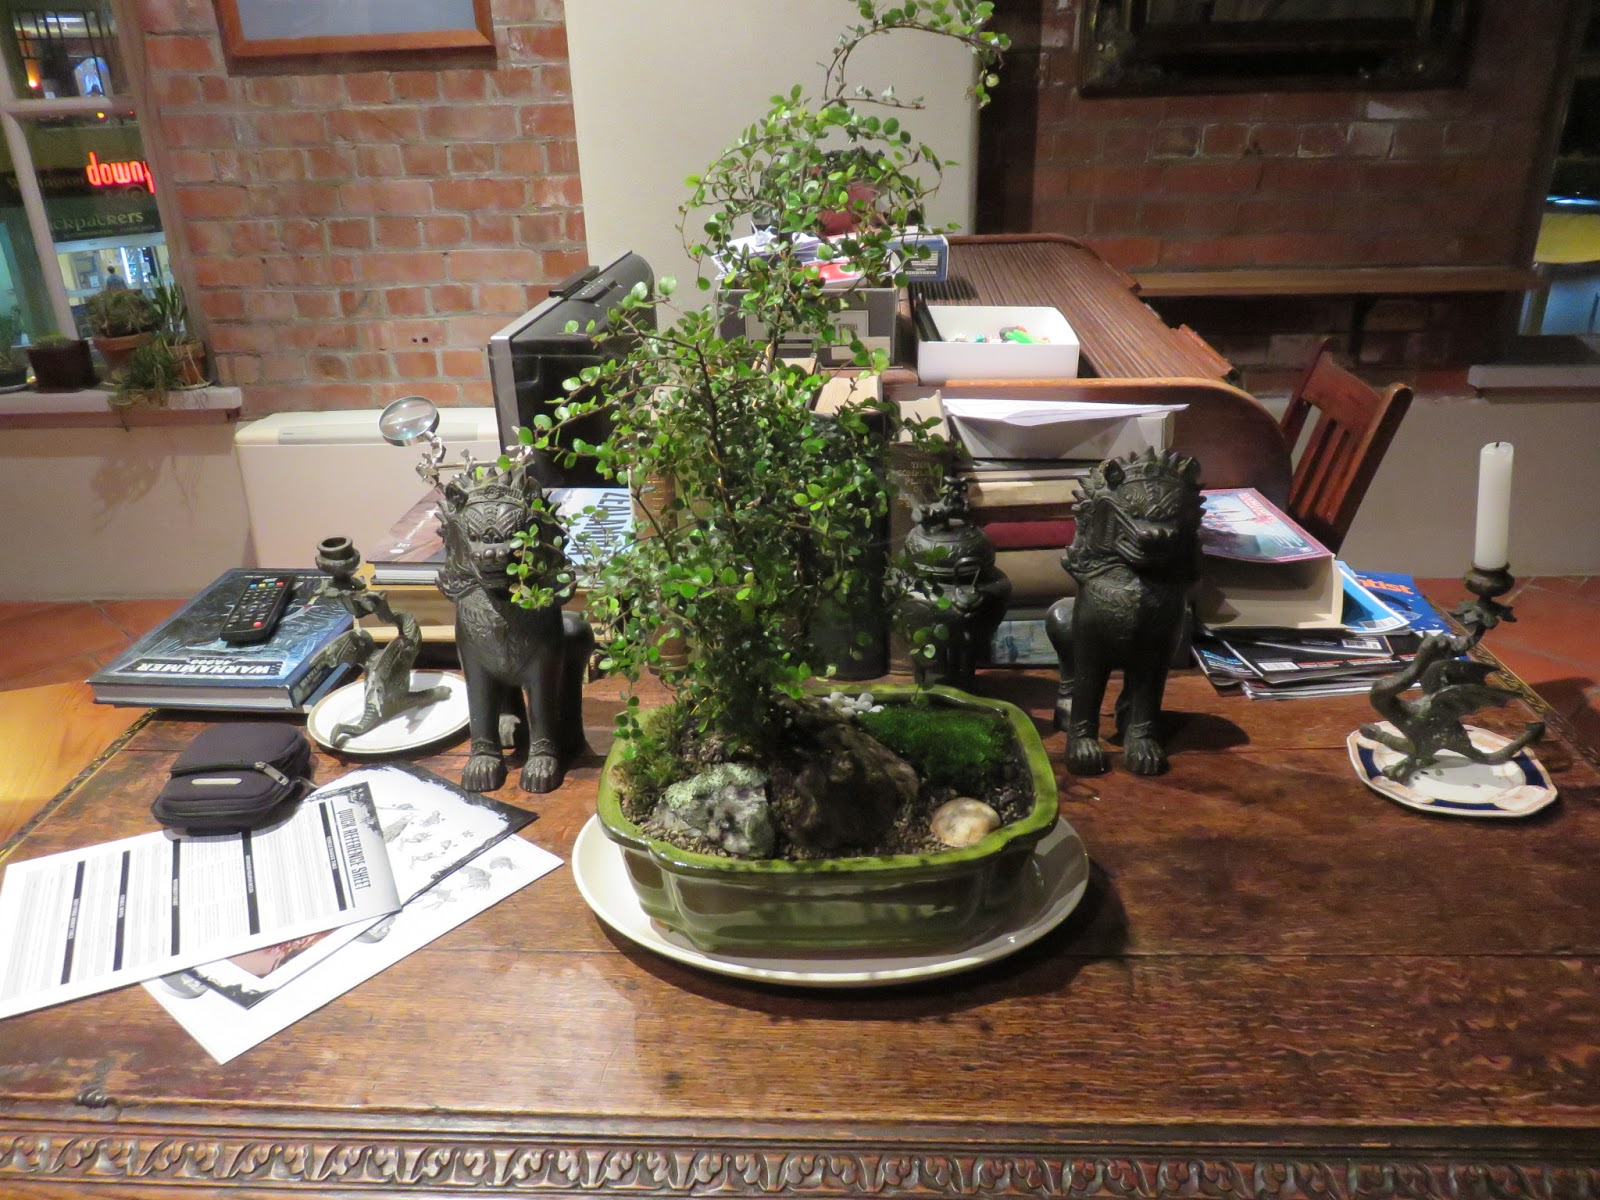 Nothofagus Bonsai